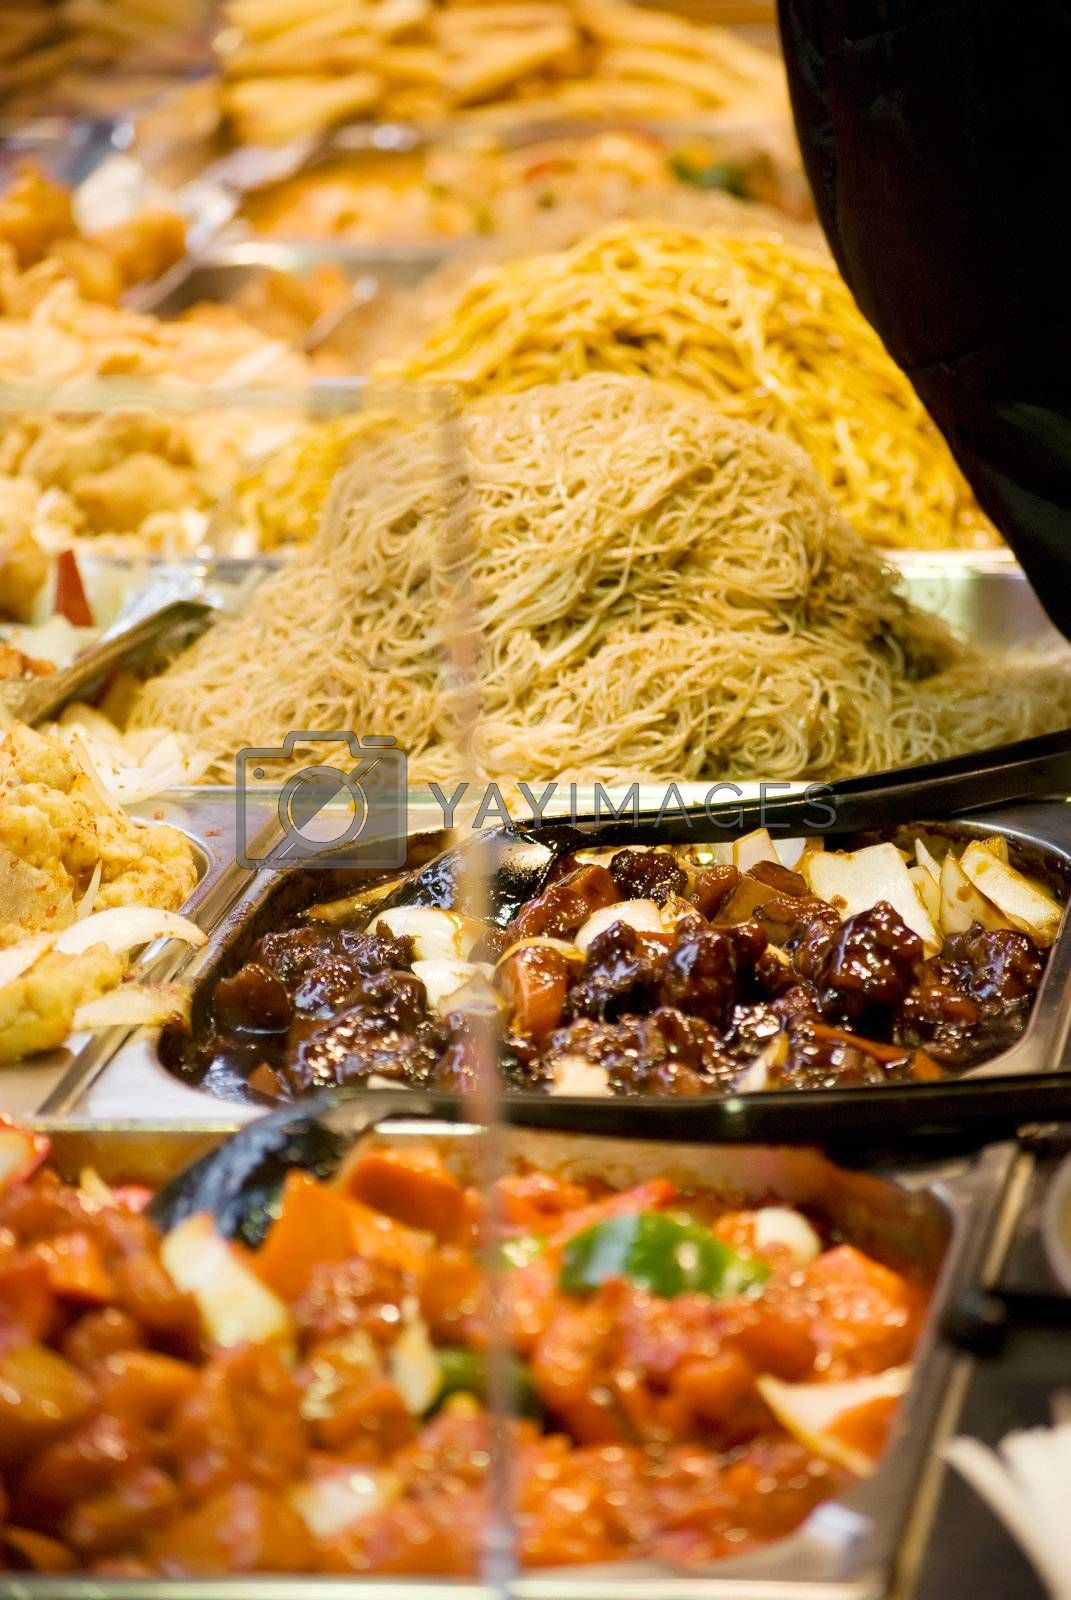 Freshly prepared oriental dishes on a market stall